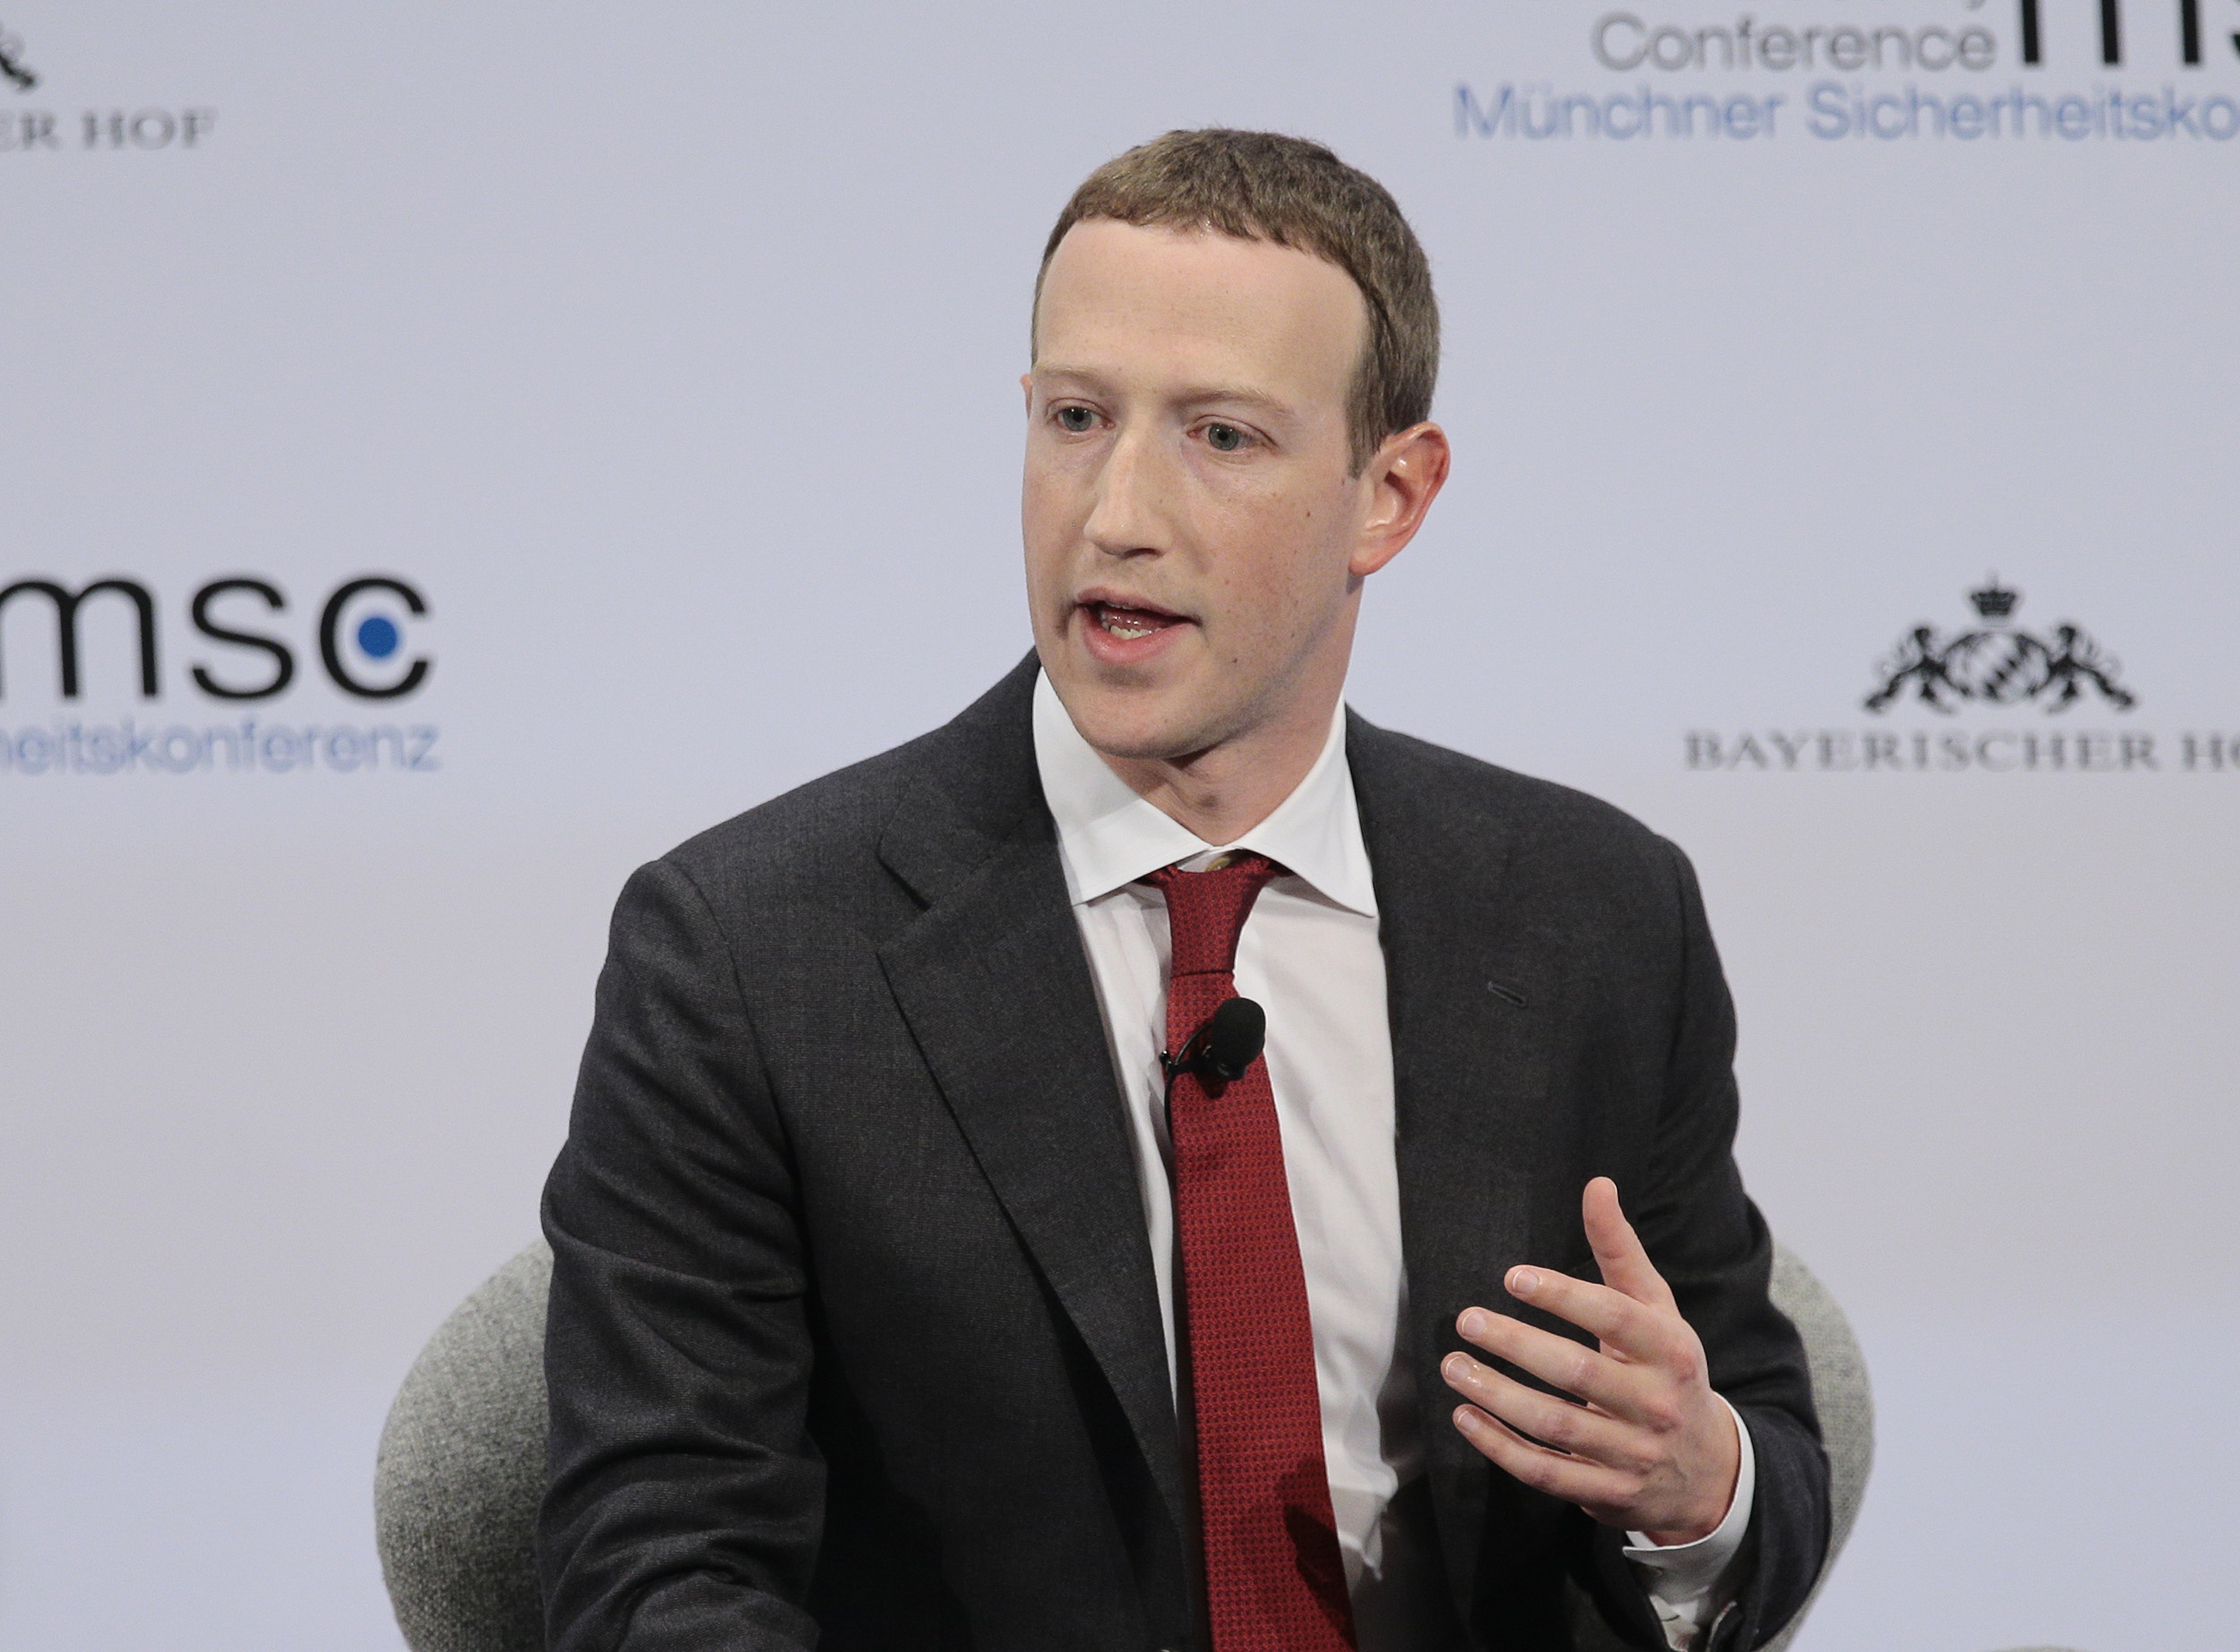 Founder and CEO of Facebook Mark Zuckerberg speaks during the 56th Munich Security Conference in Munich, Germany on February 15.